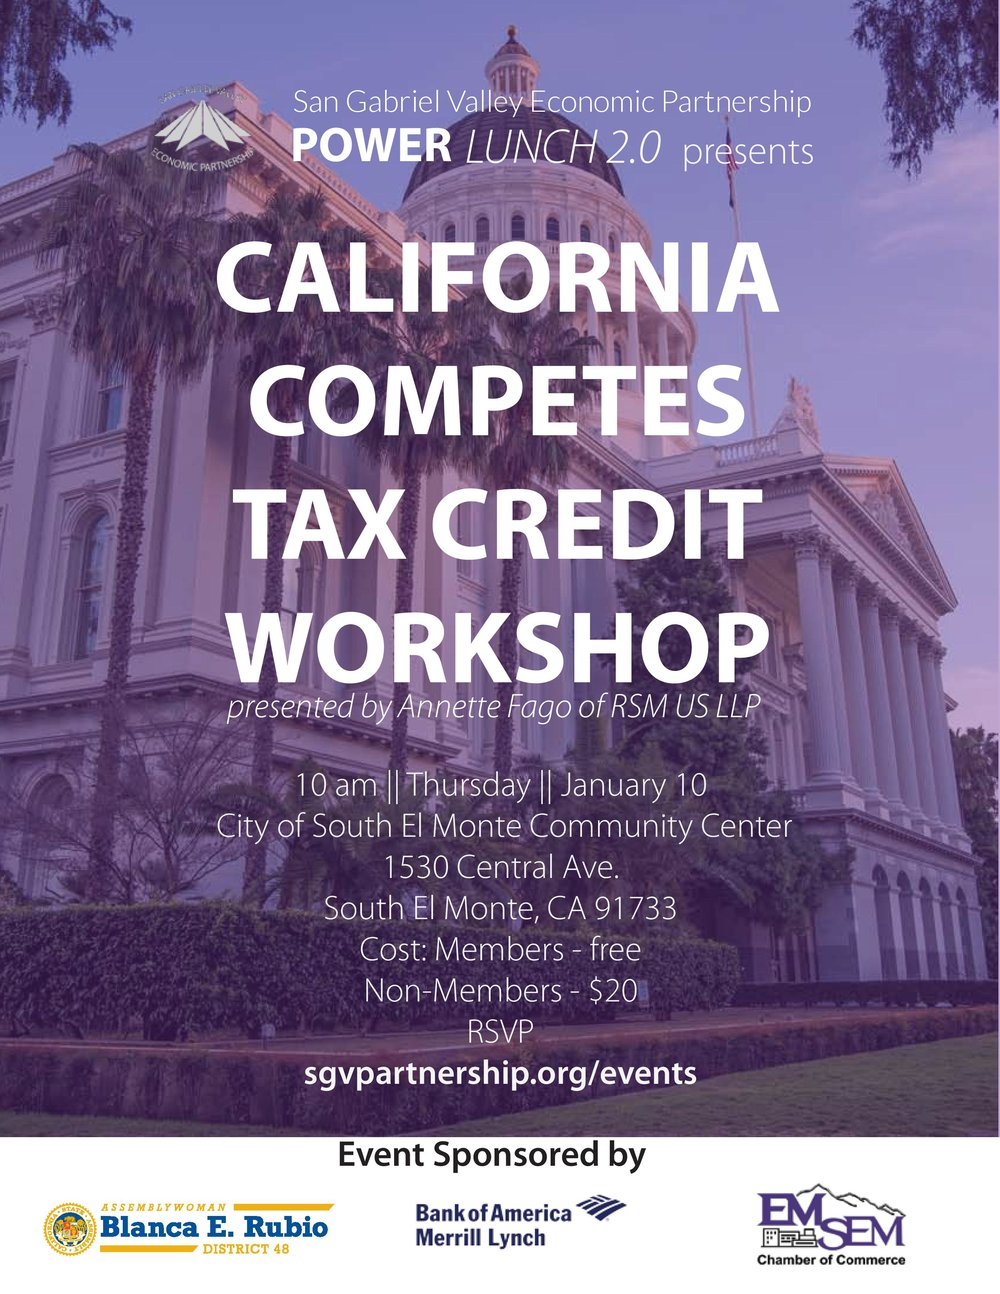 california competes tax credit workshop - January 10th, 2019